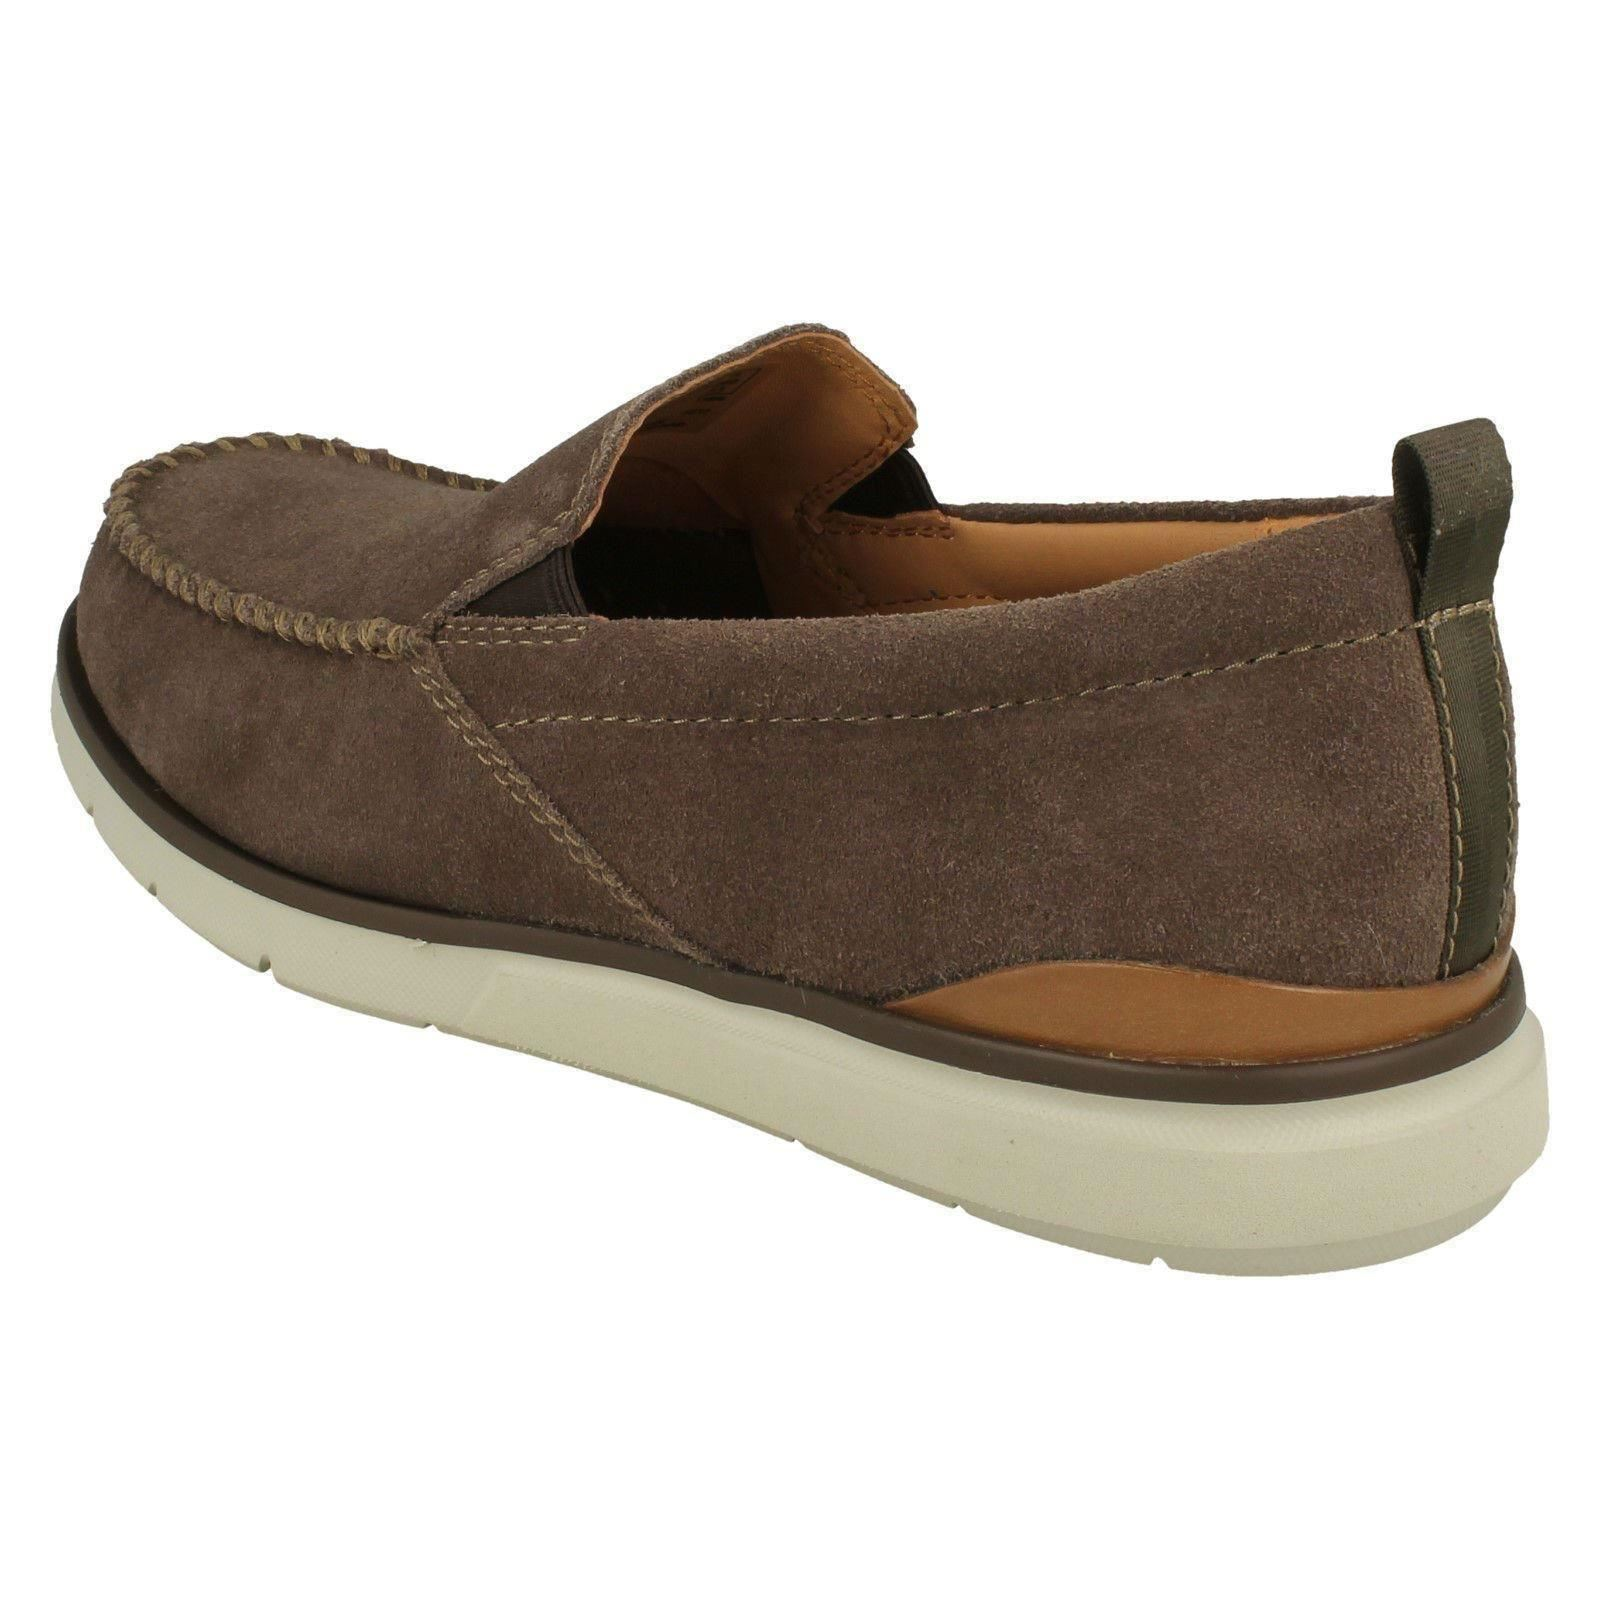 Mens Clarks Casual Slip On Shoes 'Edgewood Step'